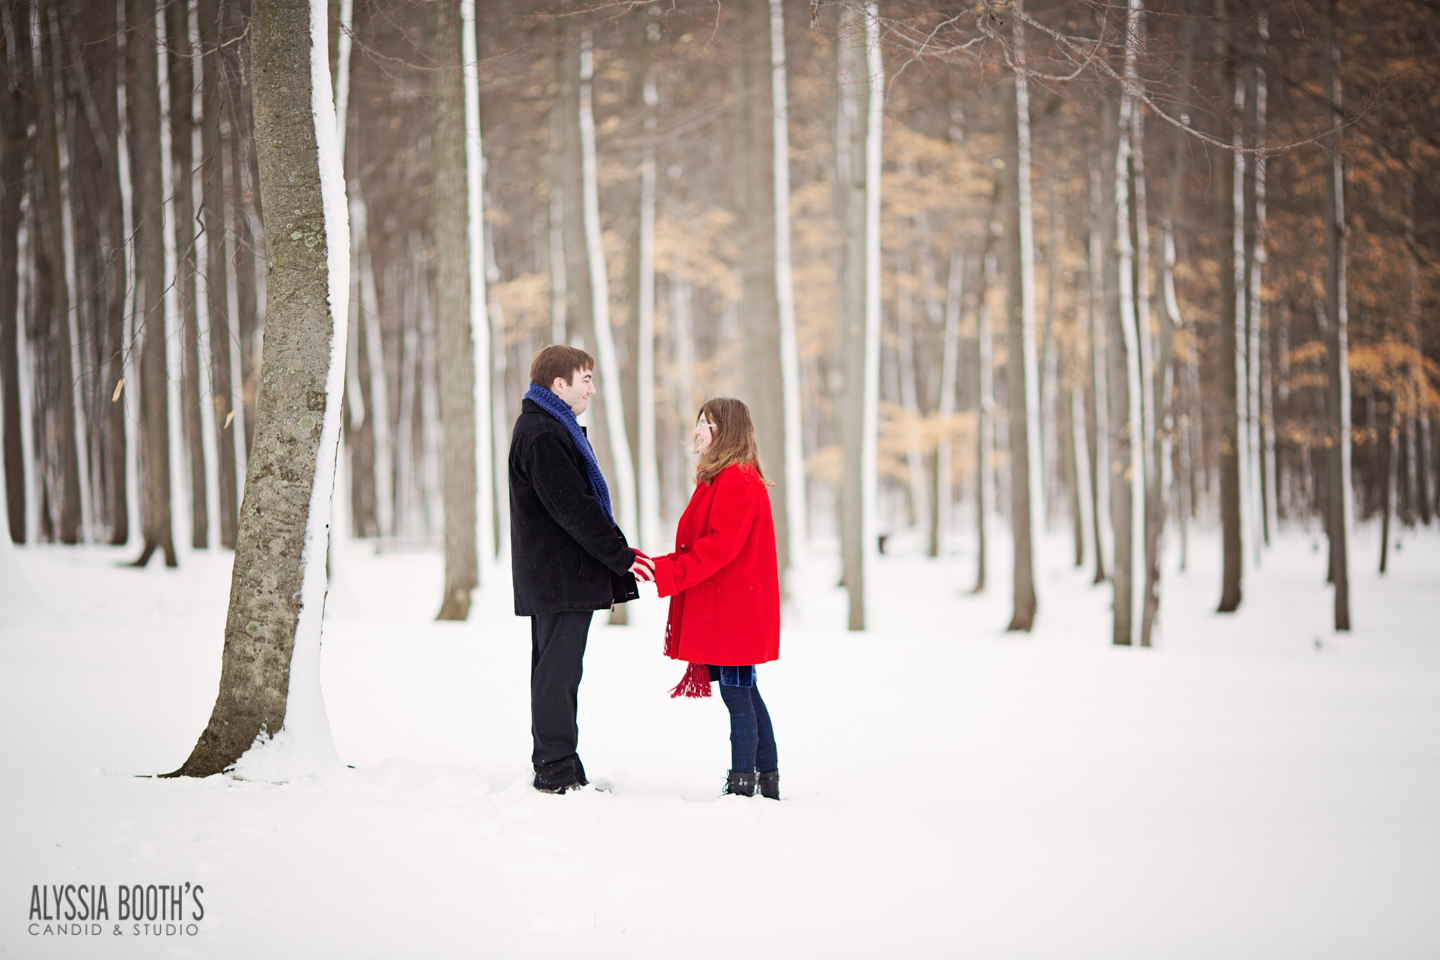 Winter Woods Engagement | Alyssia Booth's Candid & Studio | Michigan Photographer